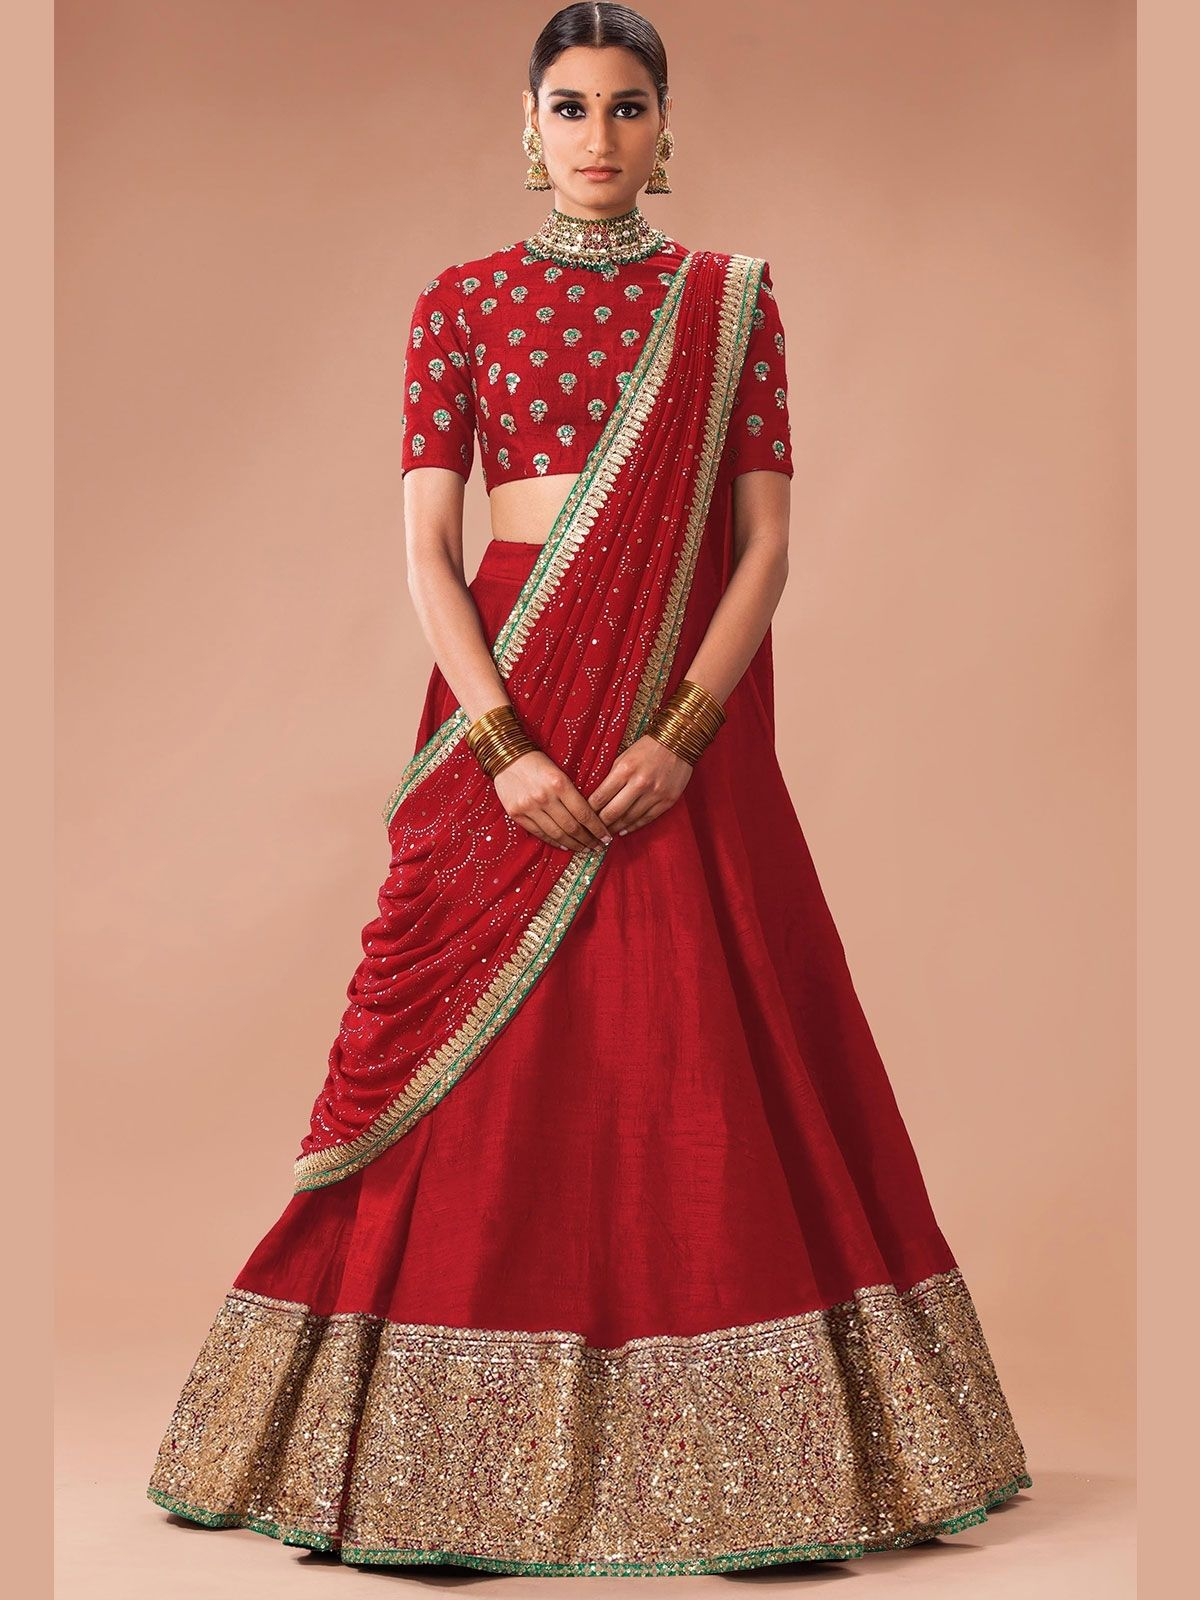 2a68033c41 Find the latest collection of red party wear designer lehenga online at  most affordable prices. Get the best designer collection of indian bridal  lehenga ...